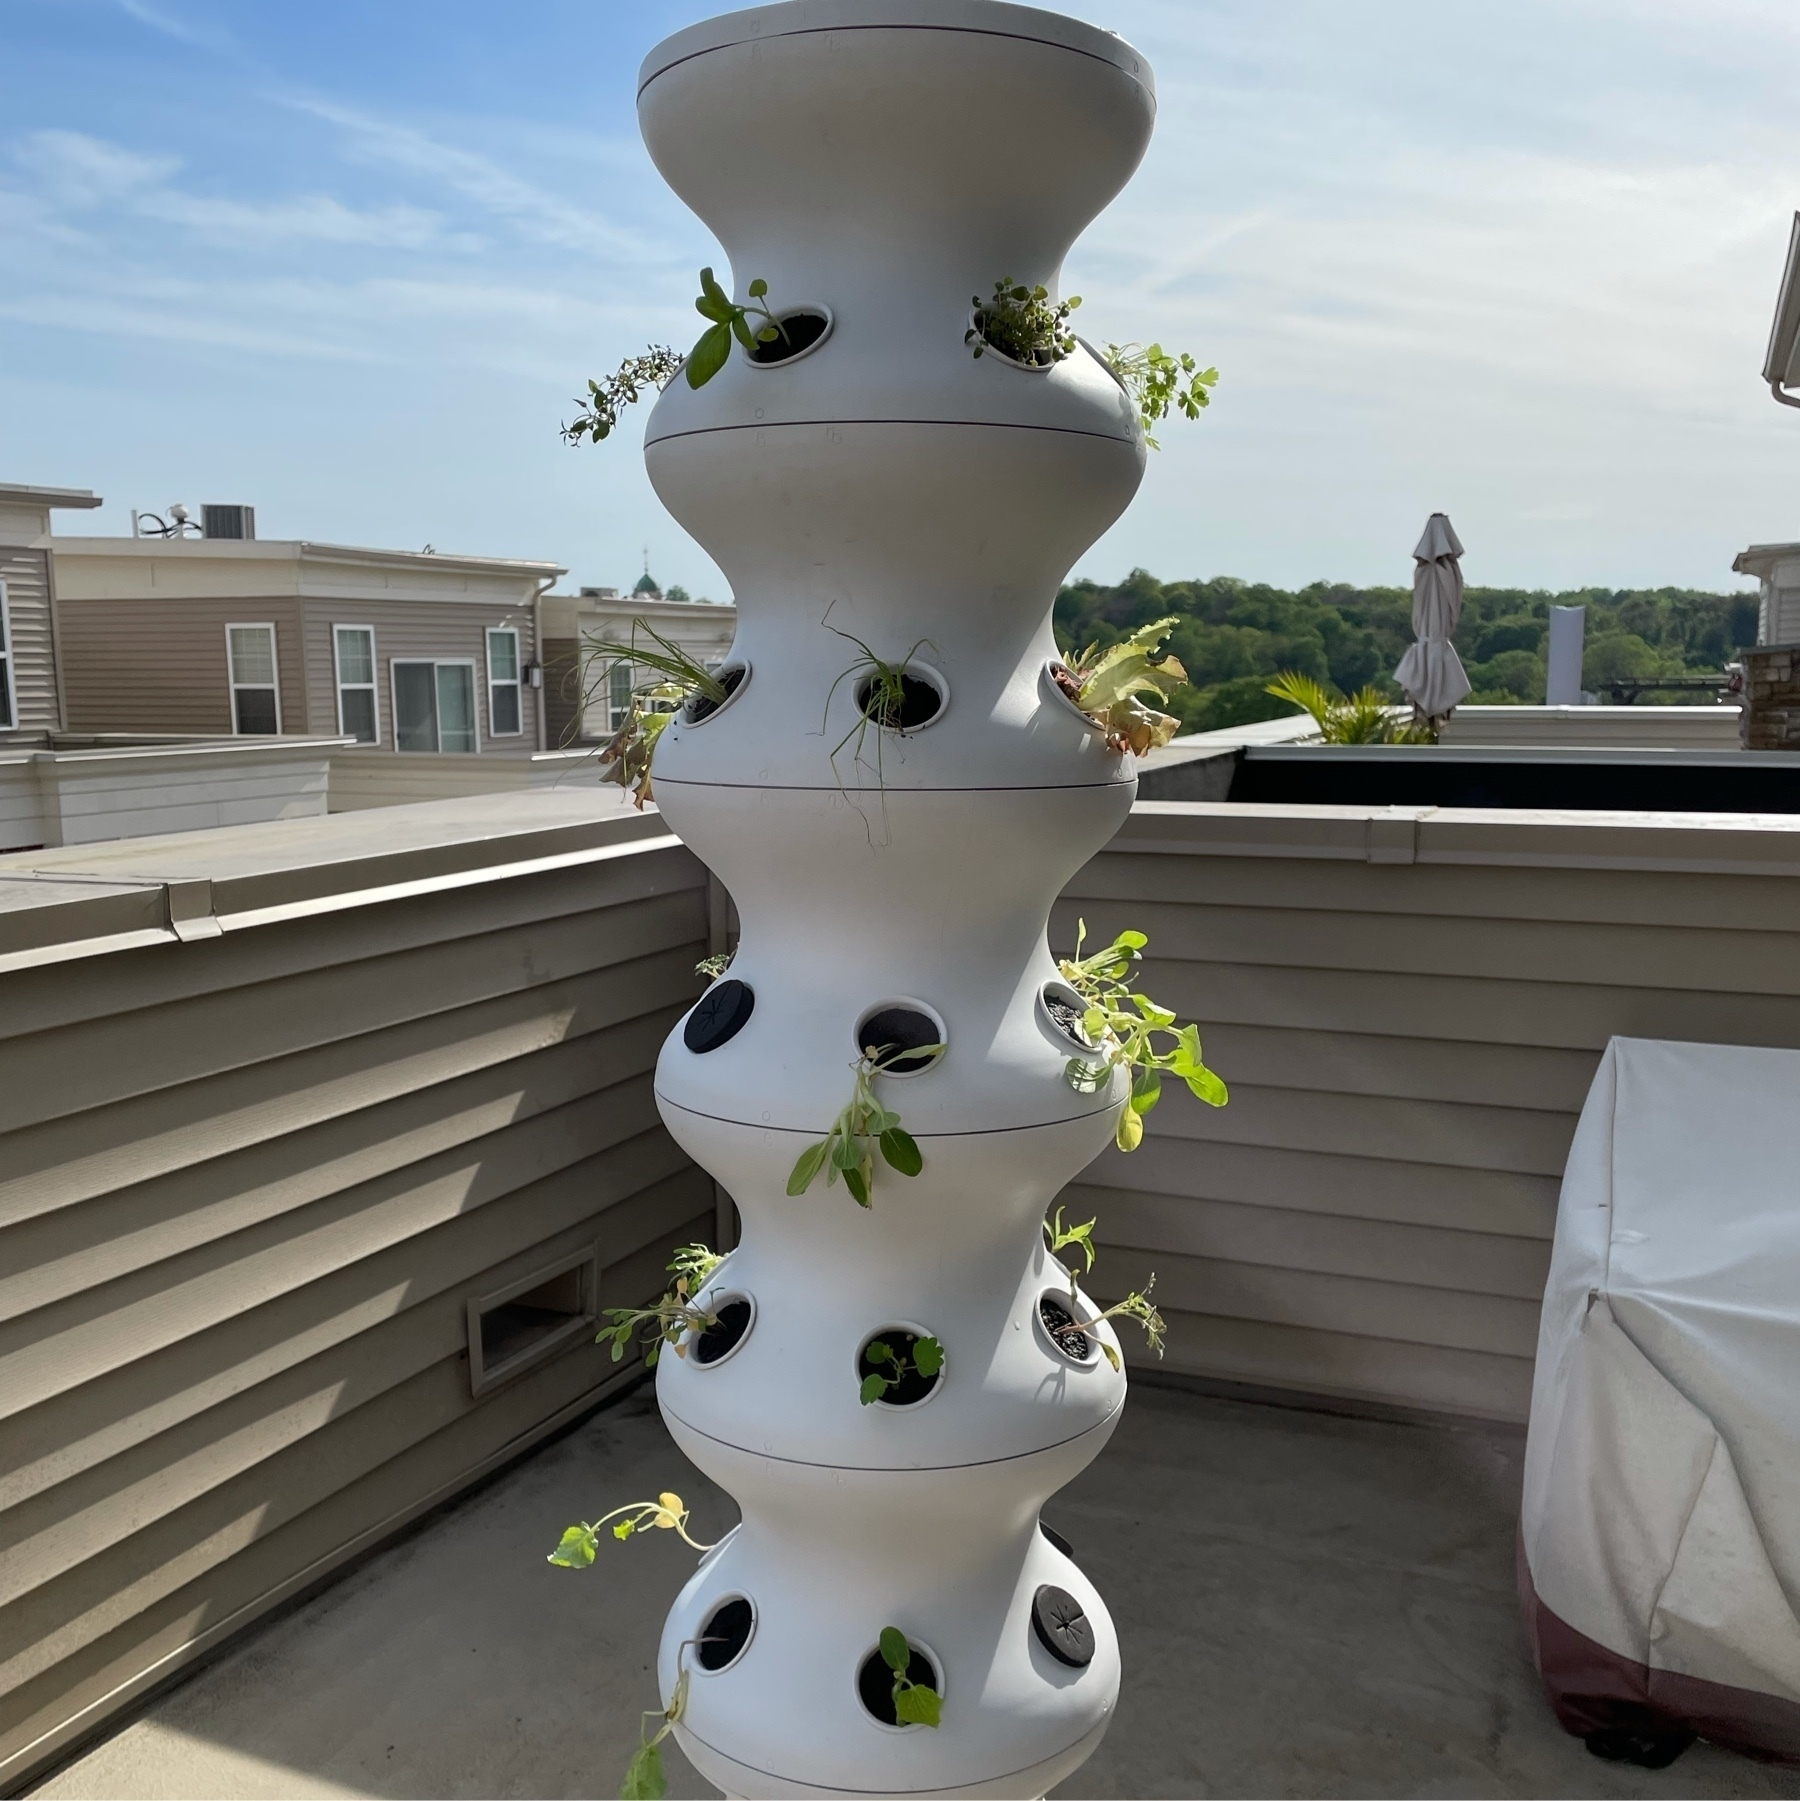 Lettuce Grow Farm stand on our roof deck.